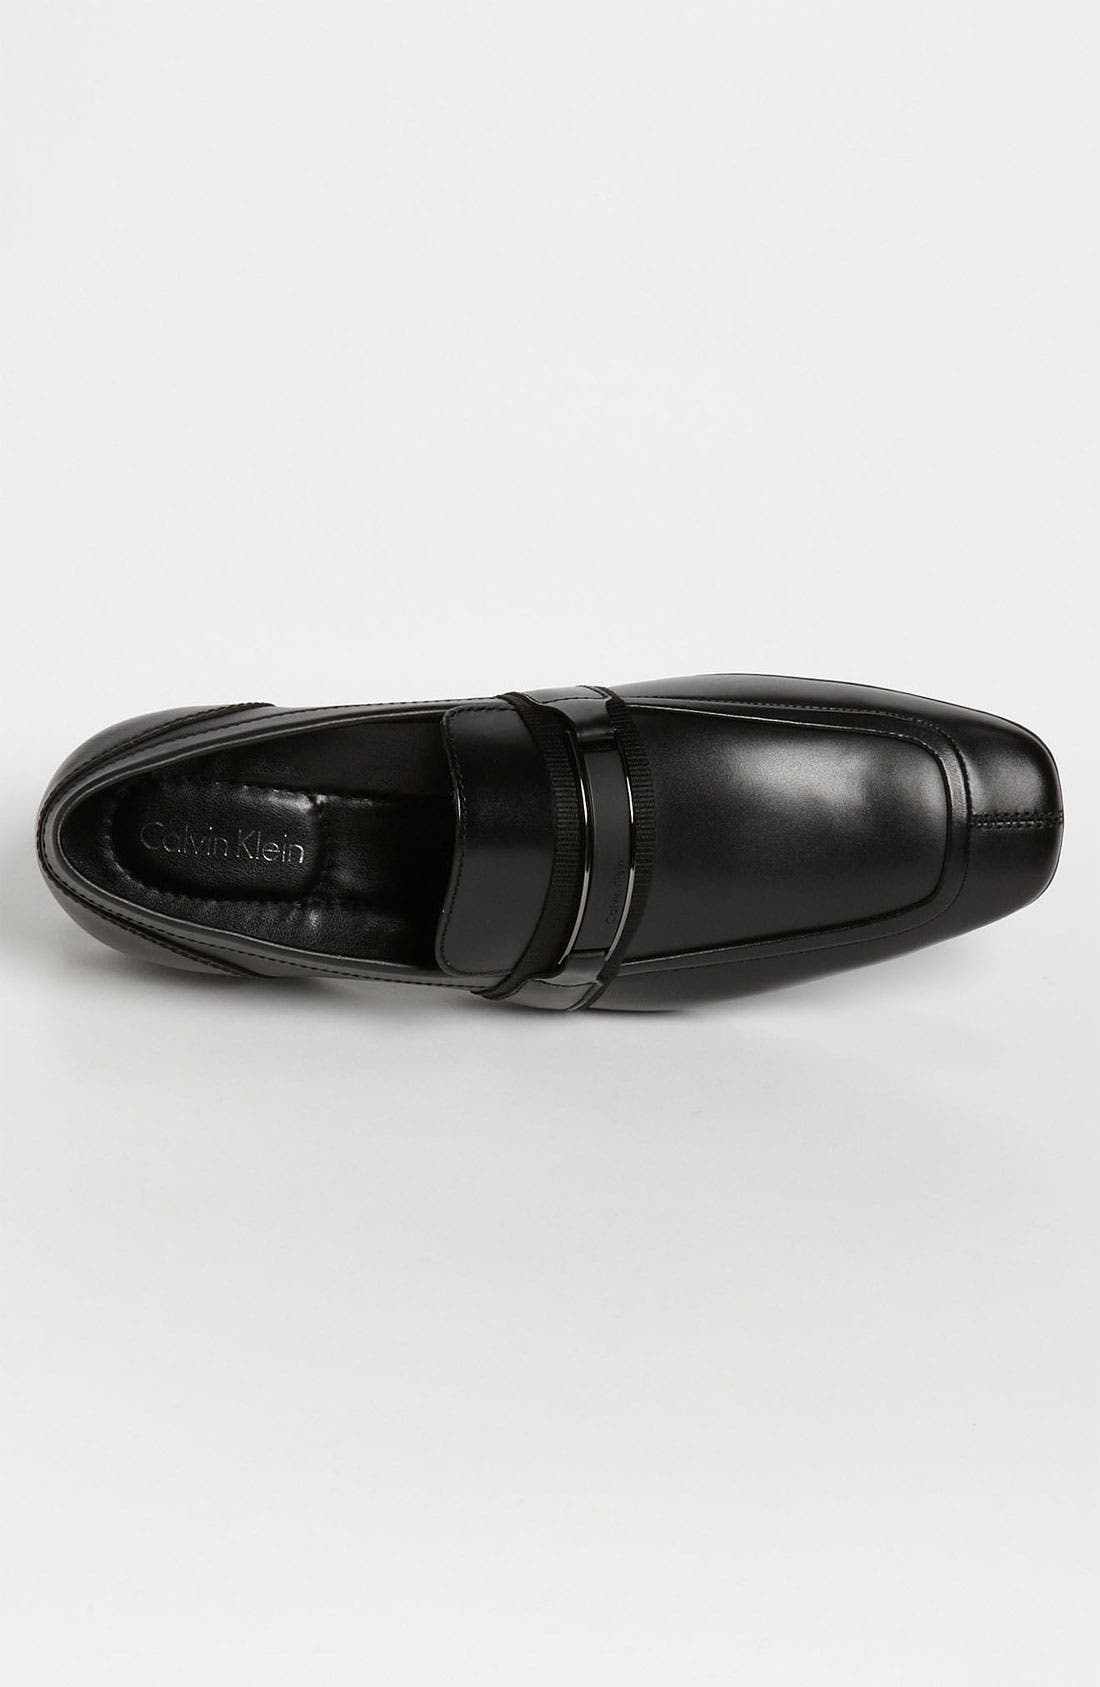 Alternate Image 3  - Calvin Klein 'Shane' Loafer